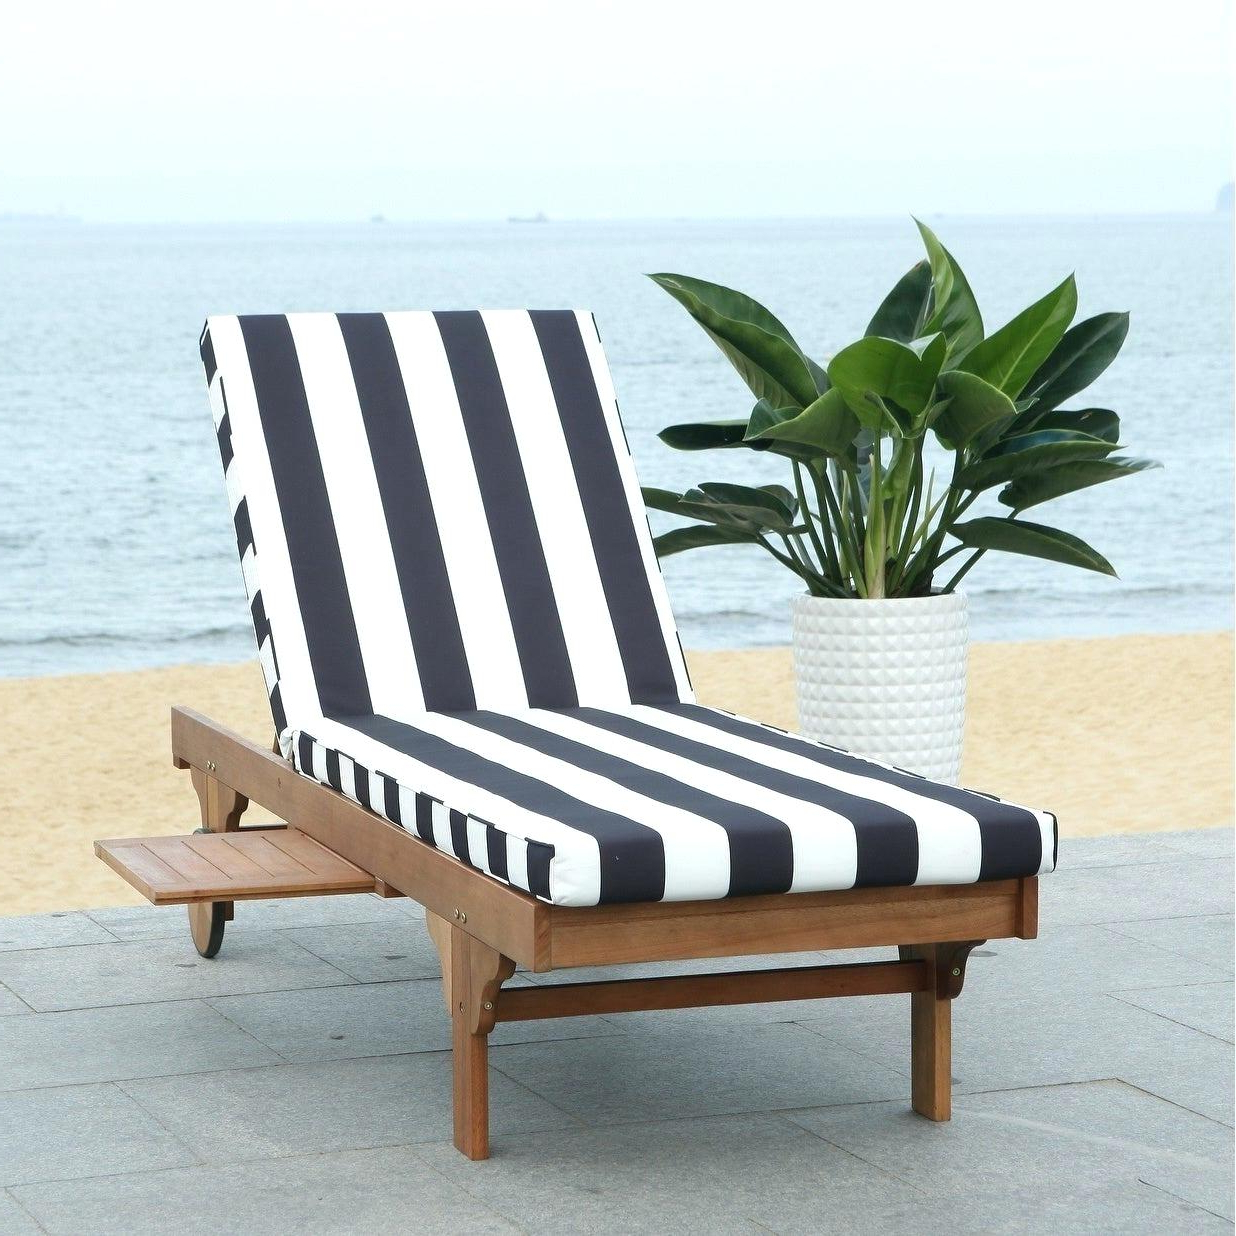 Wood Blue And White Cushion Outdoor Chaise Lounge Chairs Within Most Recently Released Wooden Chaise Lounge Chair Outdoor Plans Pool Chairs Out (View 24 of 25)